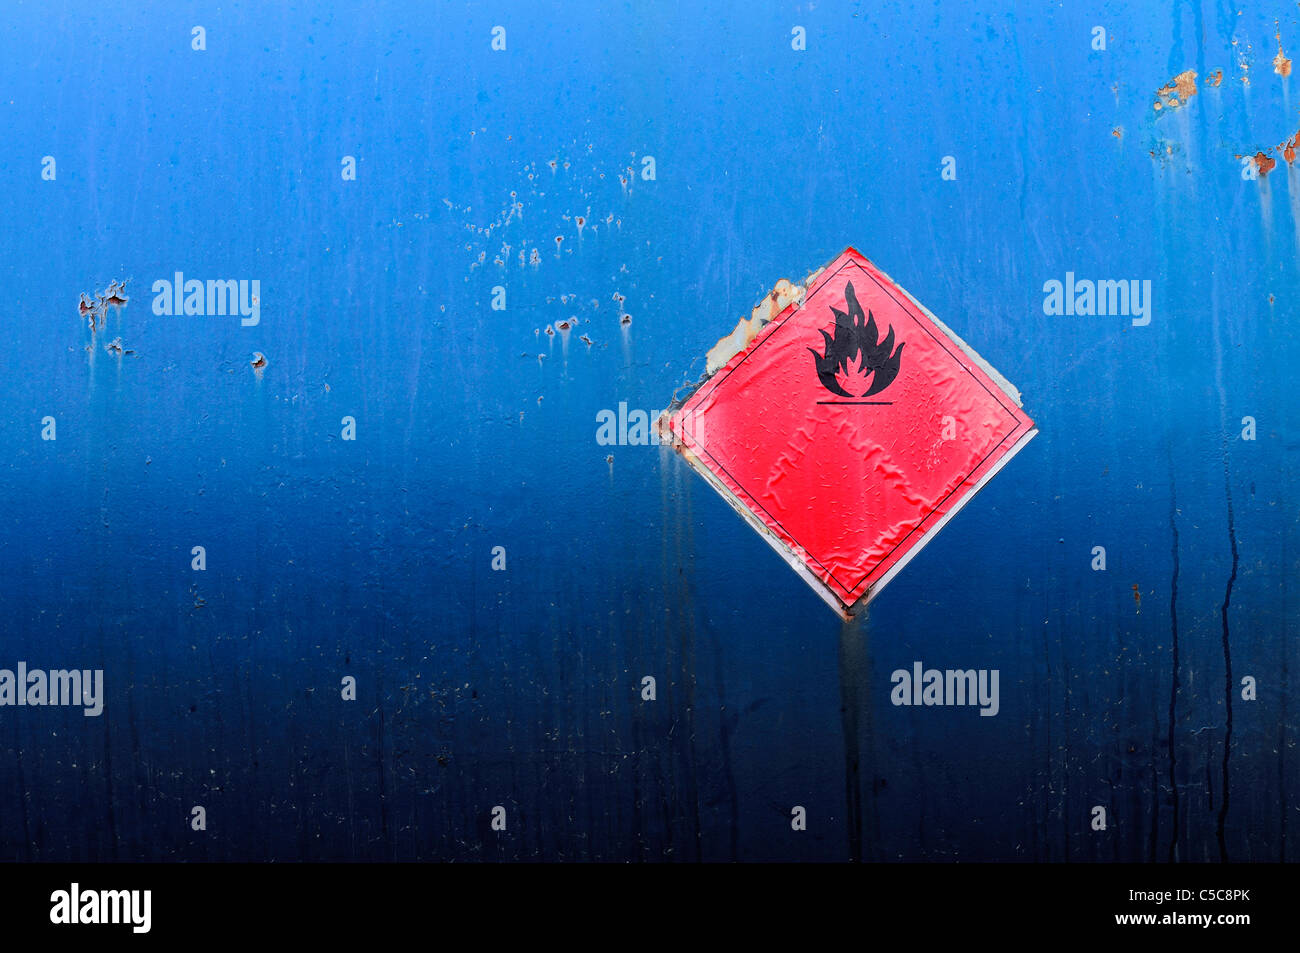 A weathered flammable symbol on grunge blue painted metal background. - Stock Image